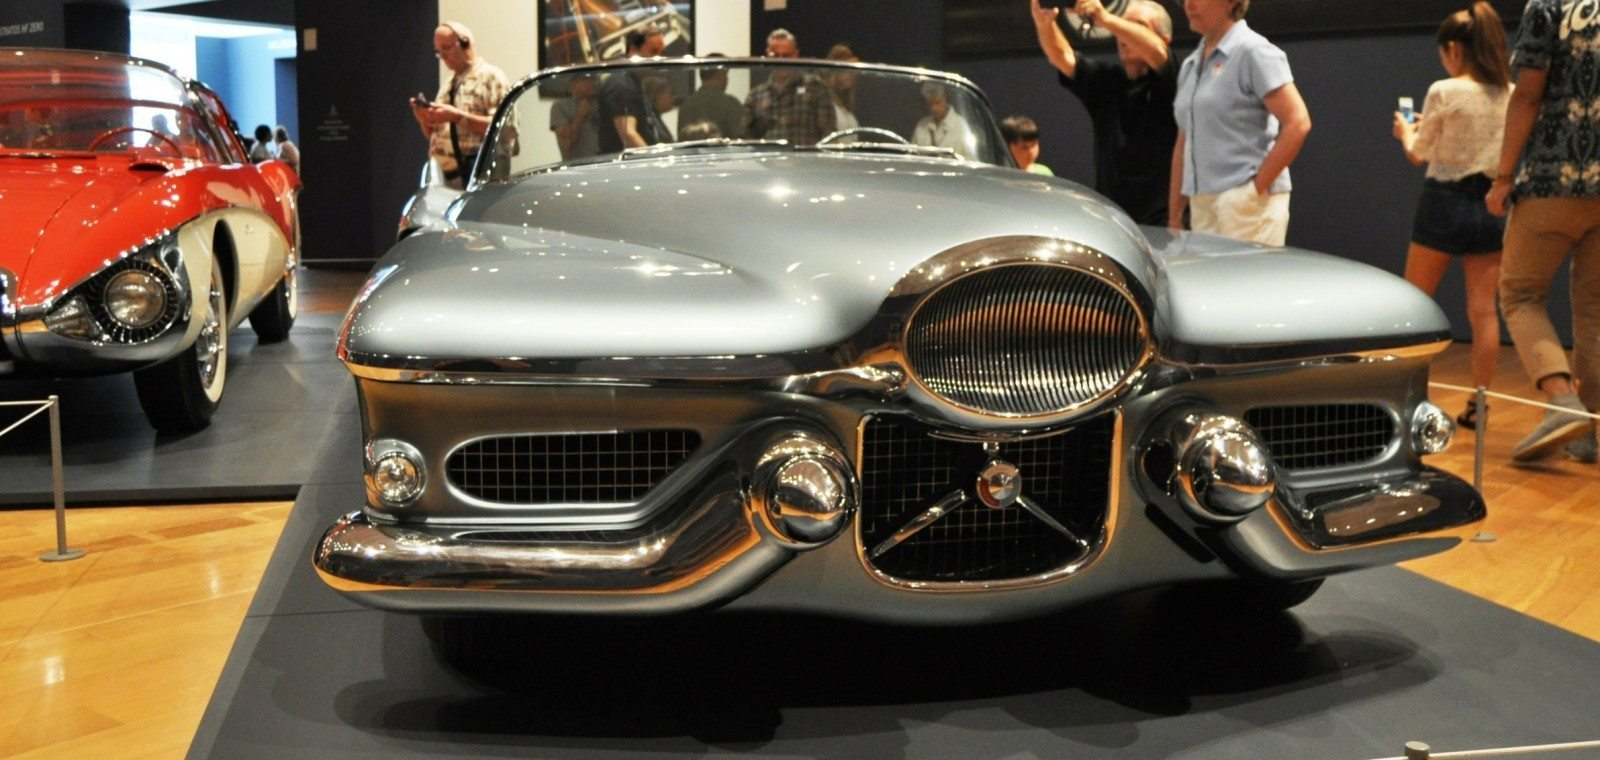 Atlanta Dream Cars - 1951 General Motors LeSabre XP-8 Struck Gold With Yank Tank Ethos of 1950s 9